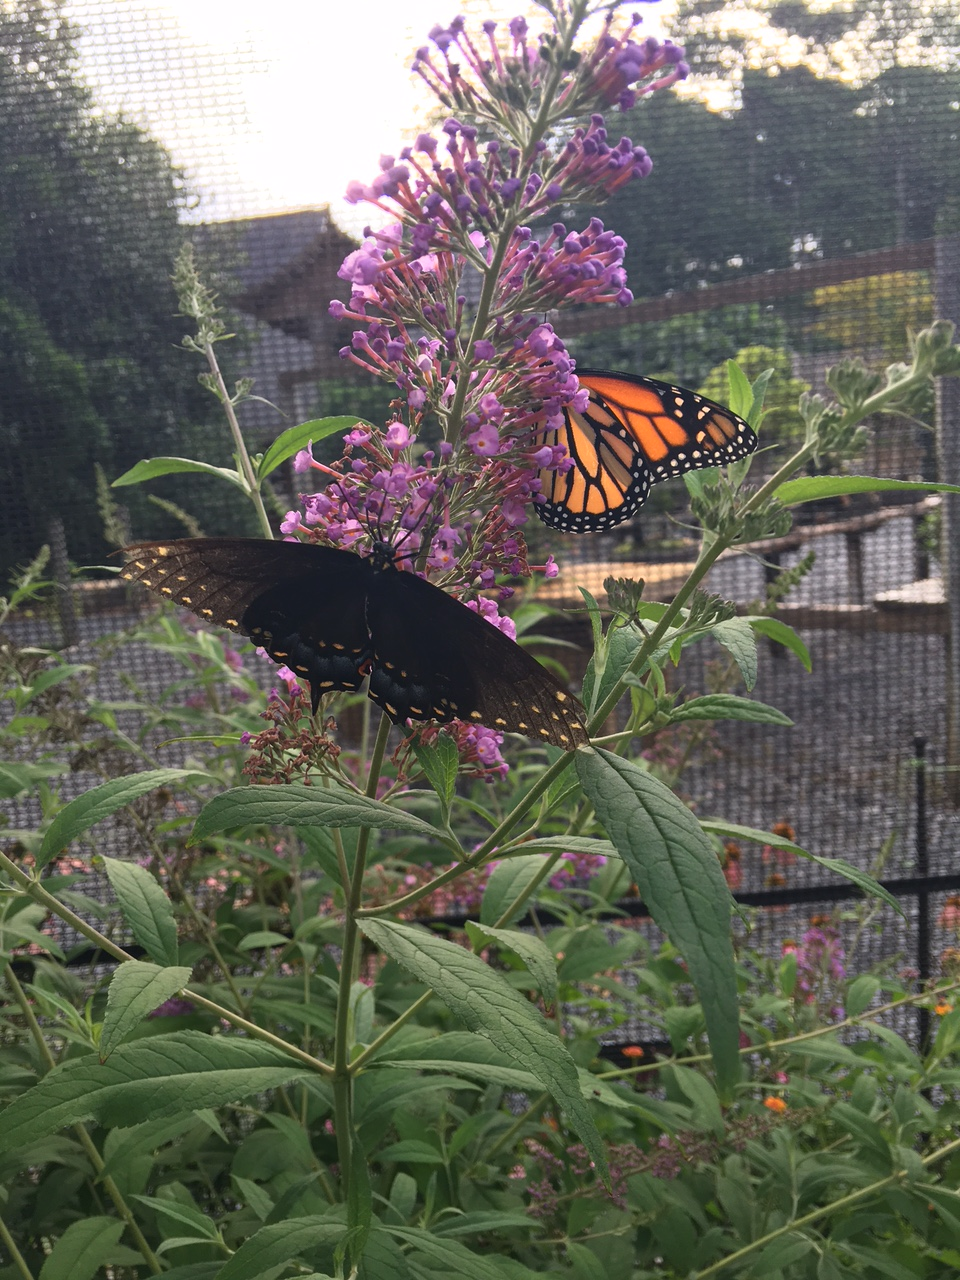 Black Swallowtail and Monarch pals